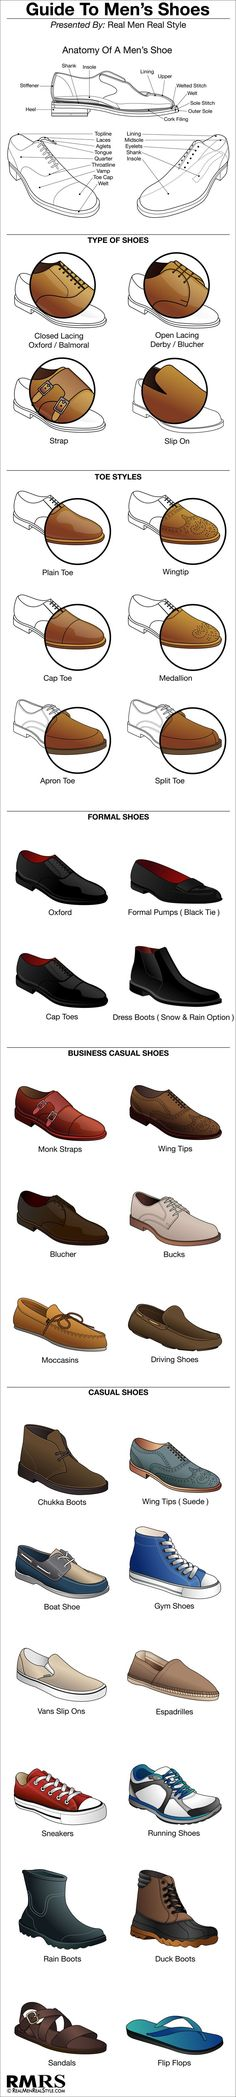 Guide To Mens Shoes                                                                                                                                                                                 More